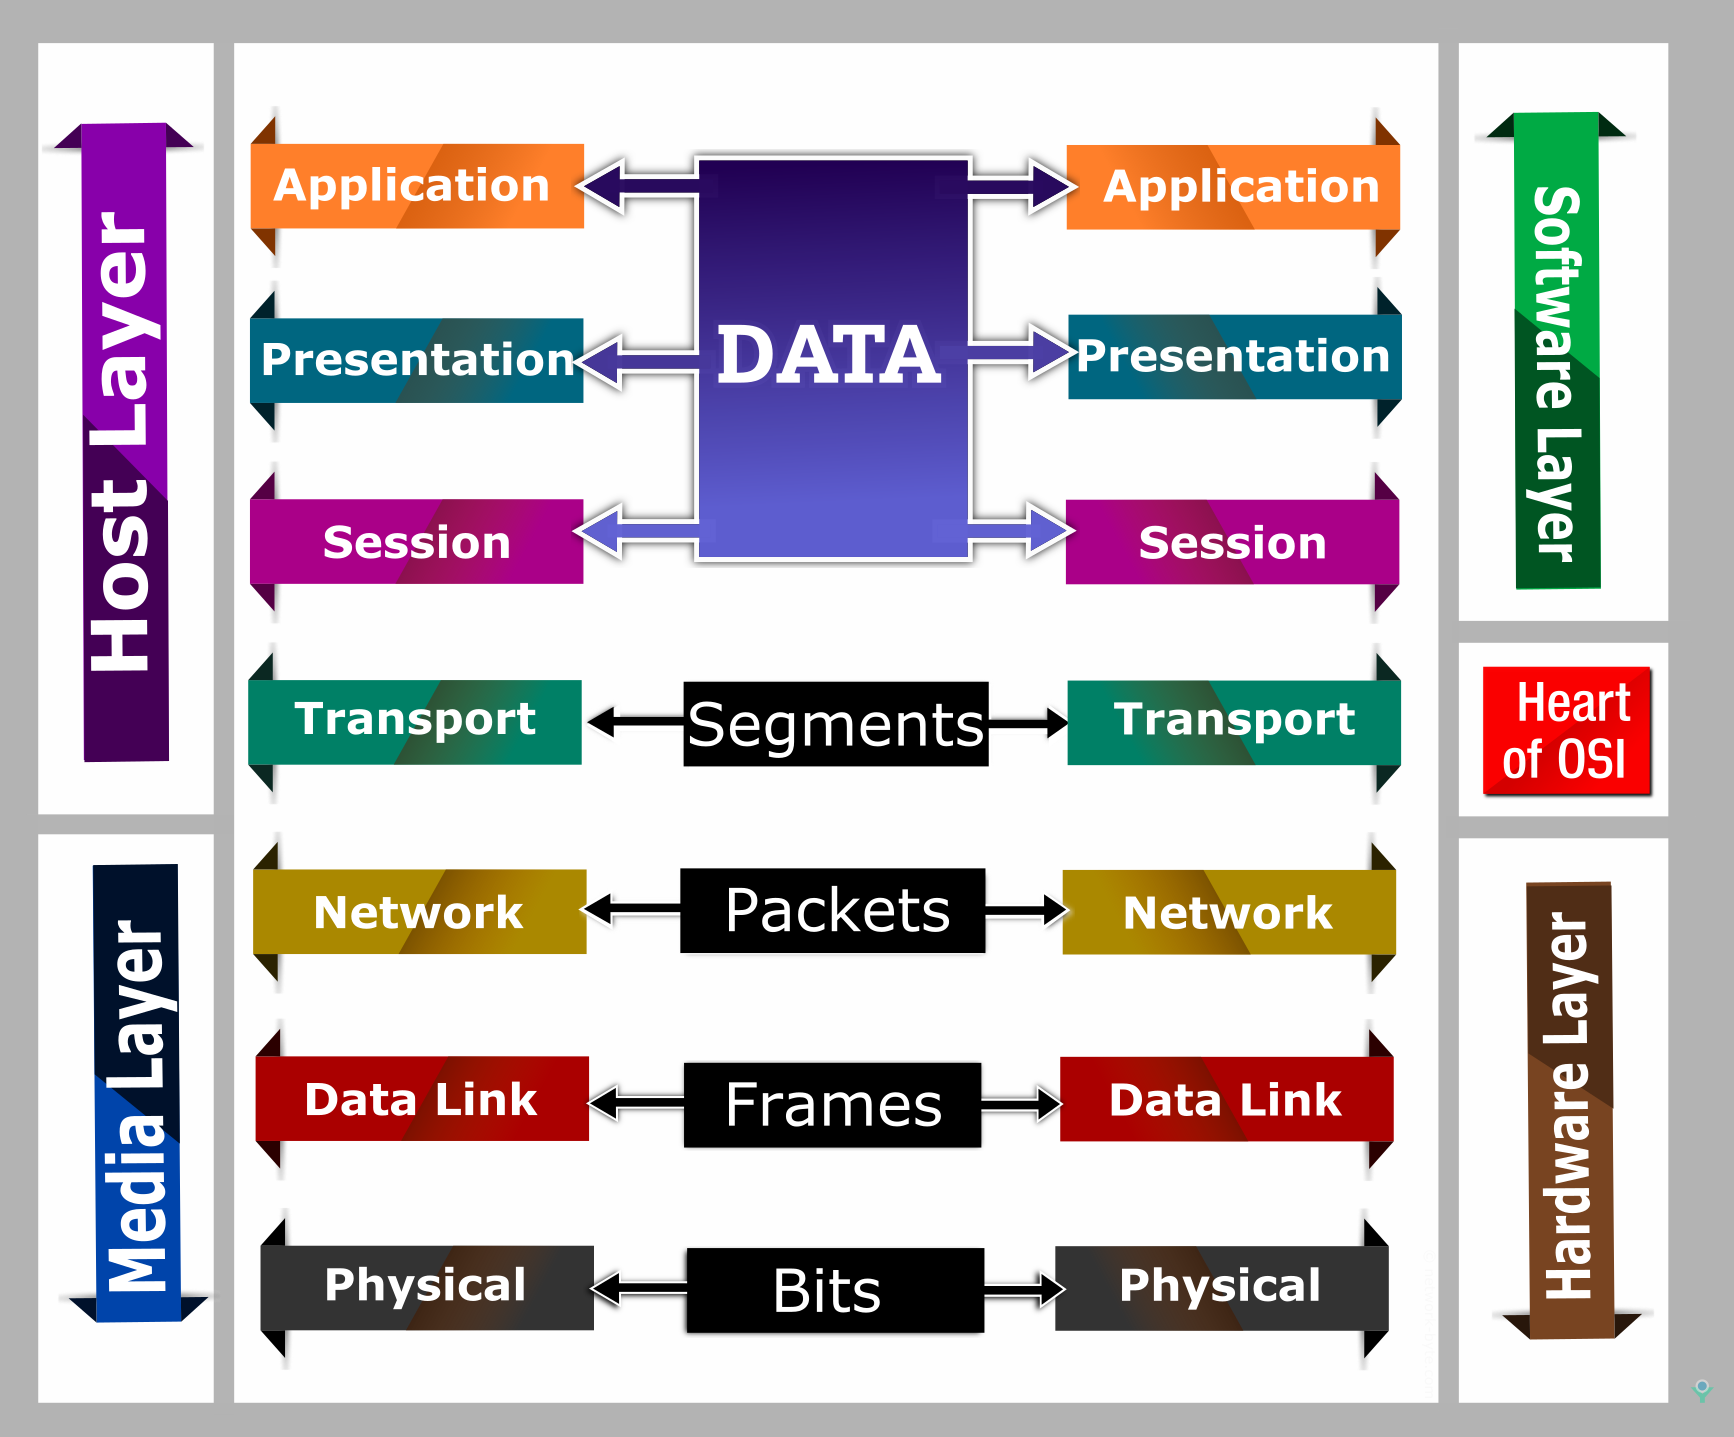 OSI reference model 7 layer model